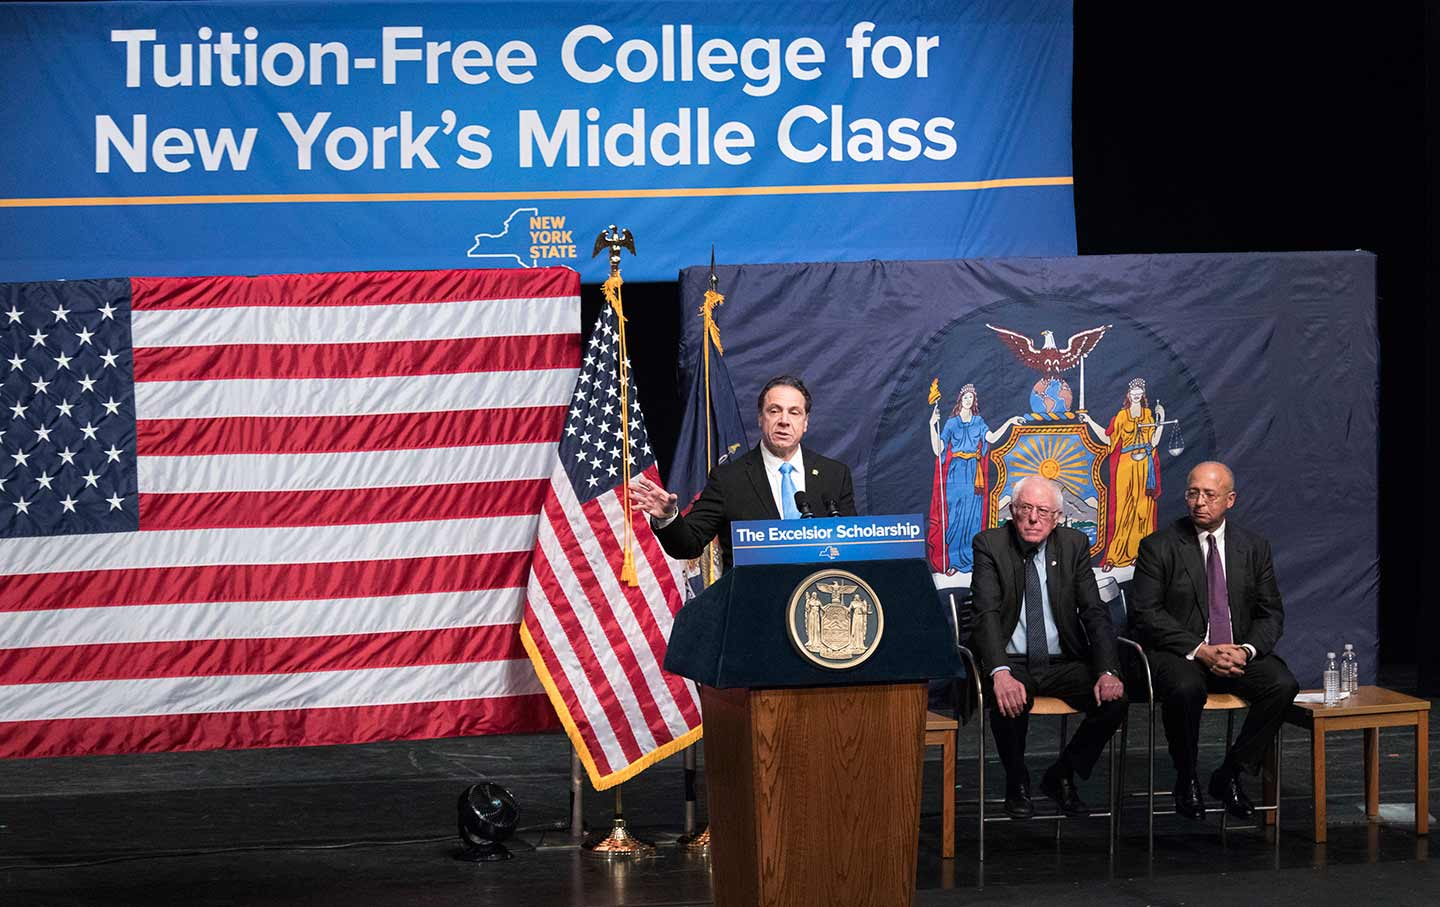 Andrew Cuomo announces free college tuition